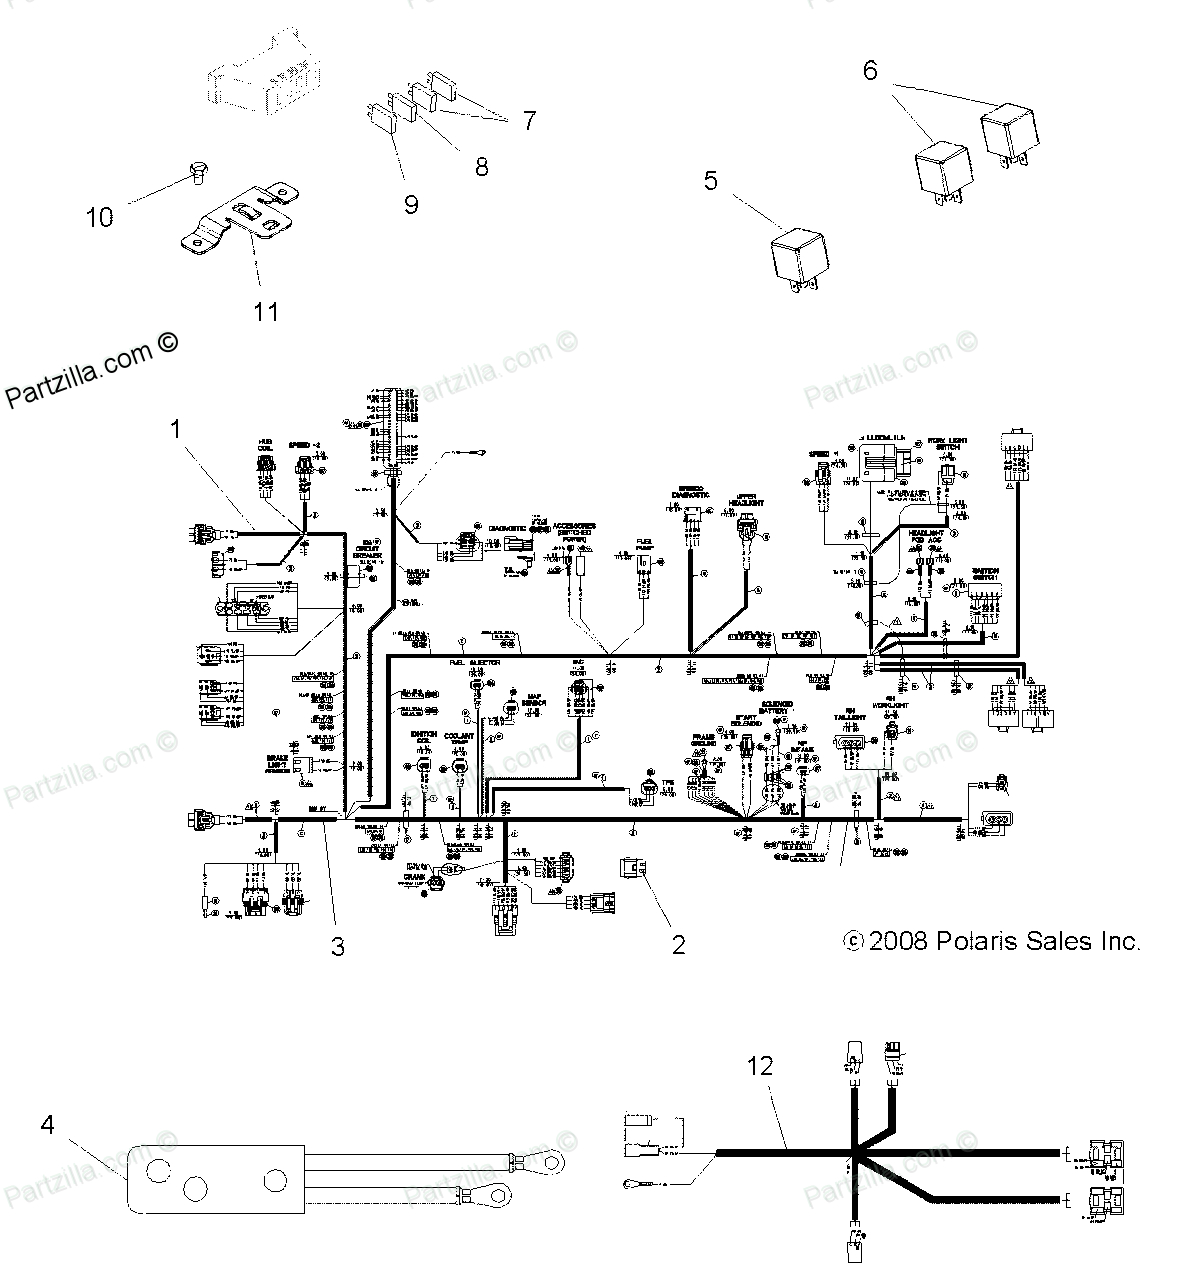 2004 Polaris Sportsman 400 Wiring Diagram Electrical 1996 500 Stator Sample 700 Accessories